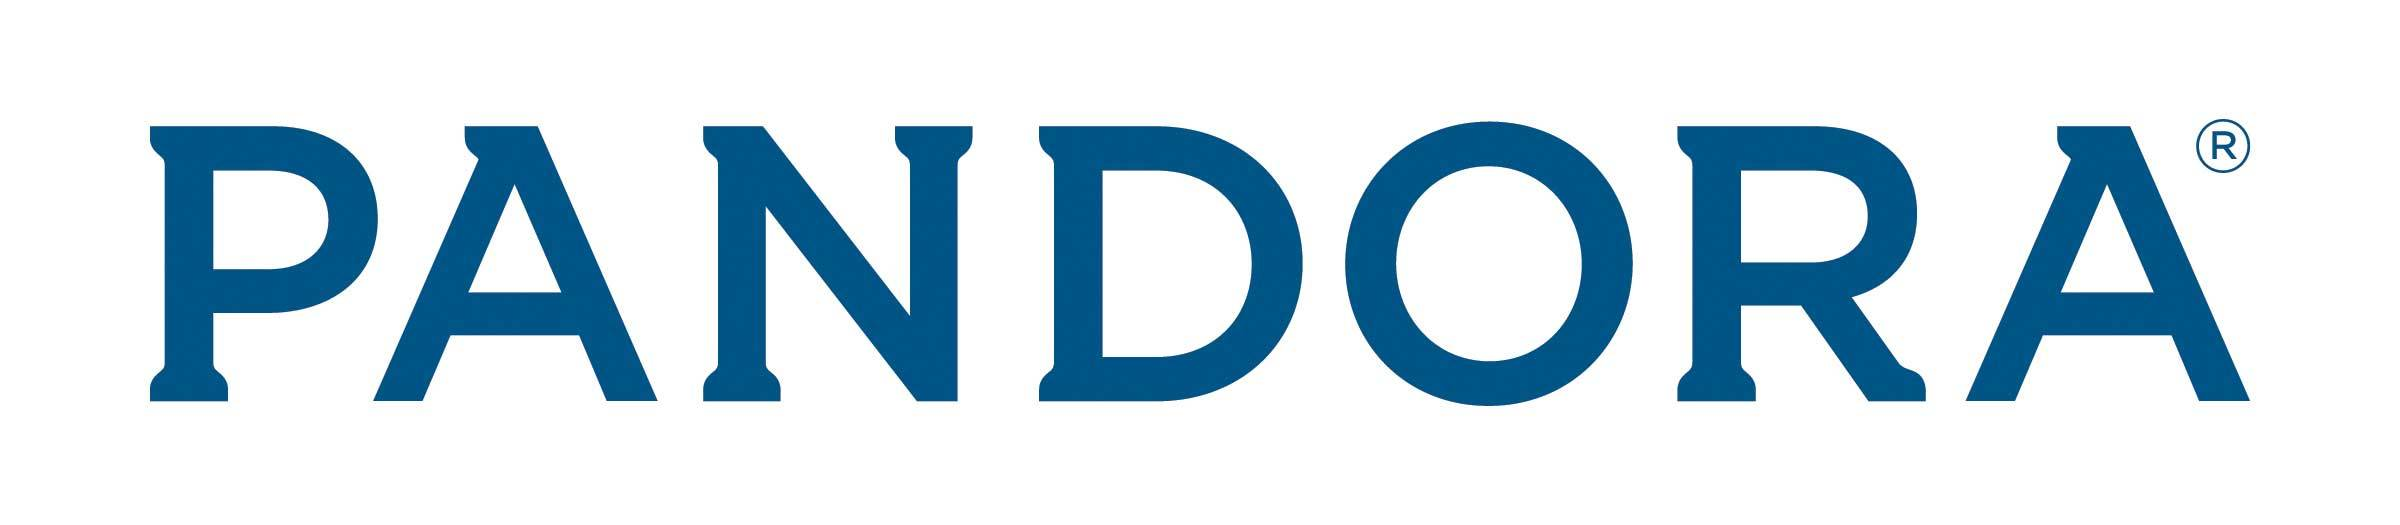 Pandora Signs Licensing Agreements With Ascap And Bmi Business Wire